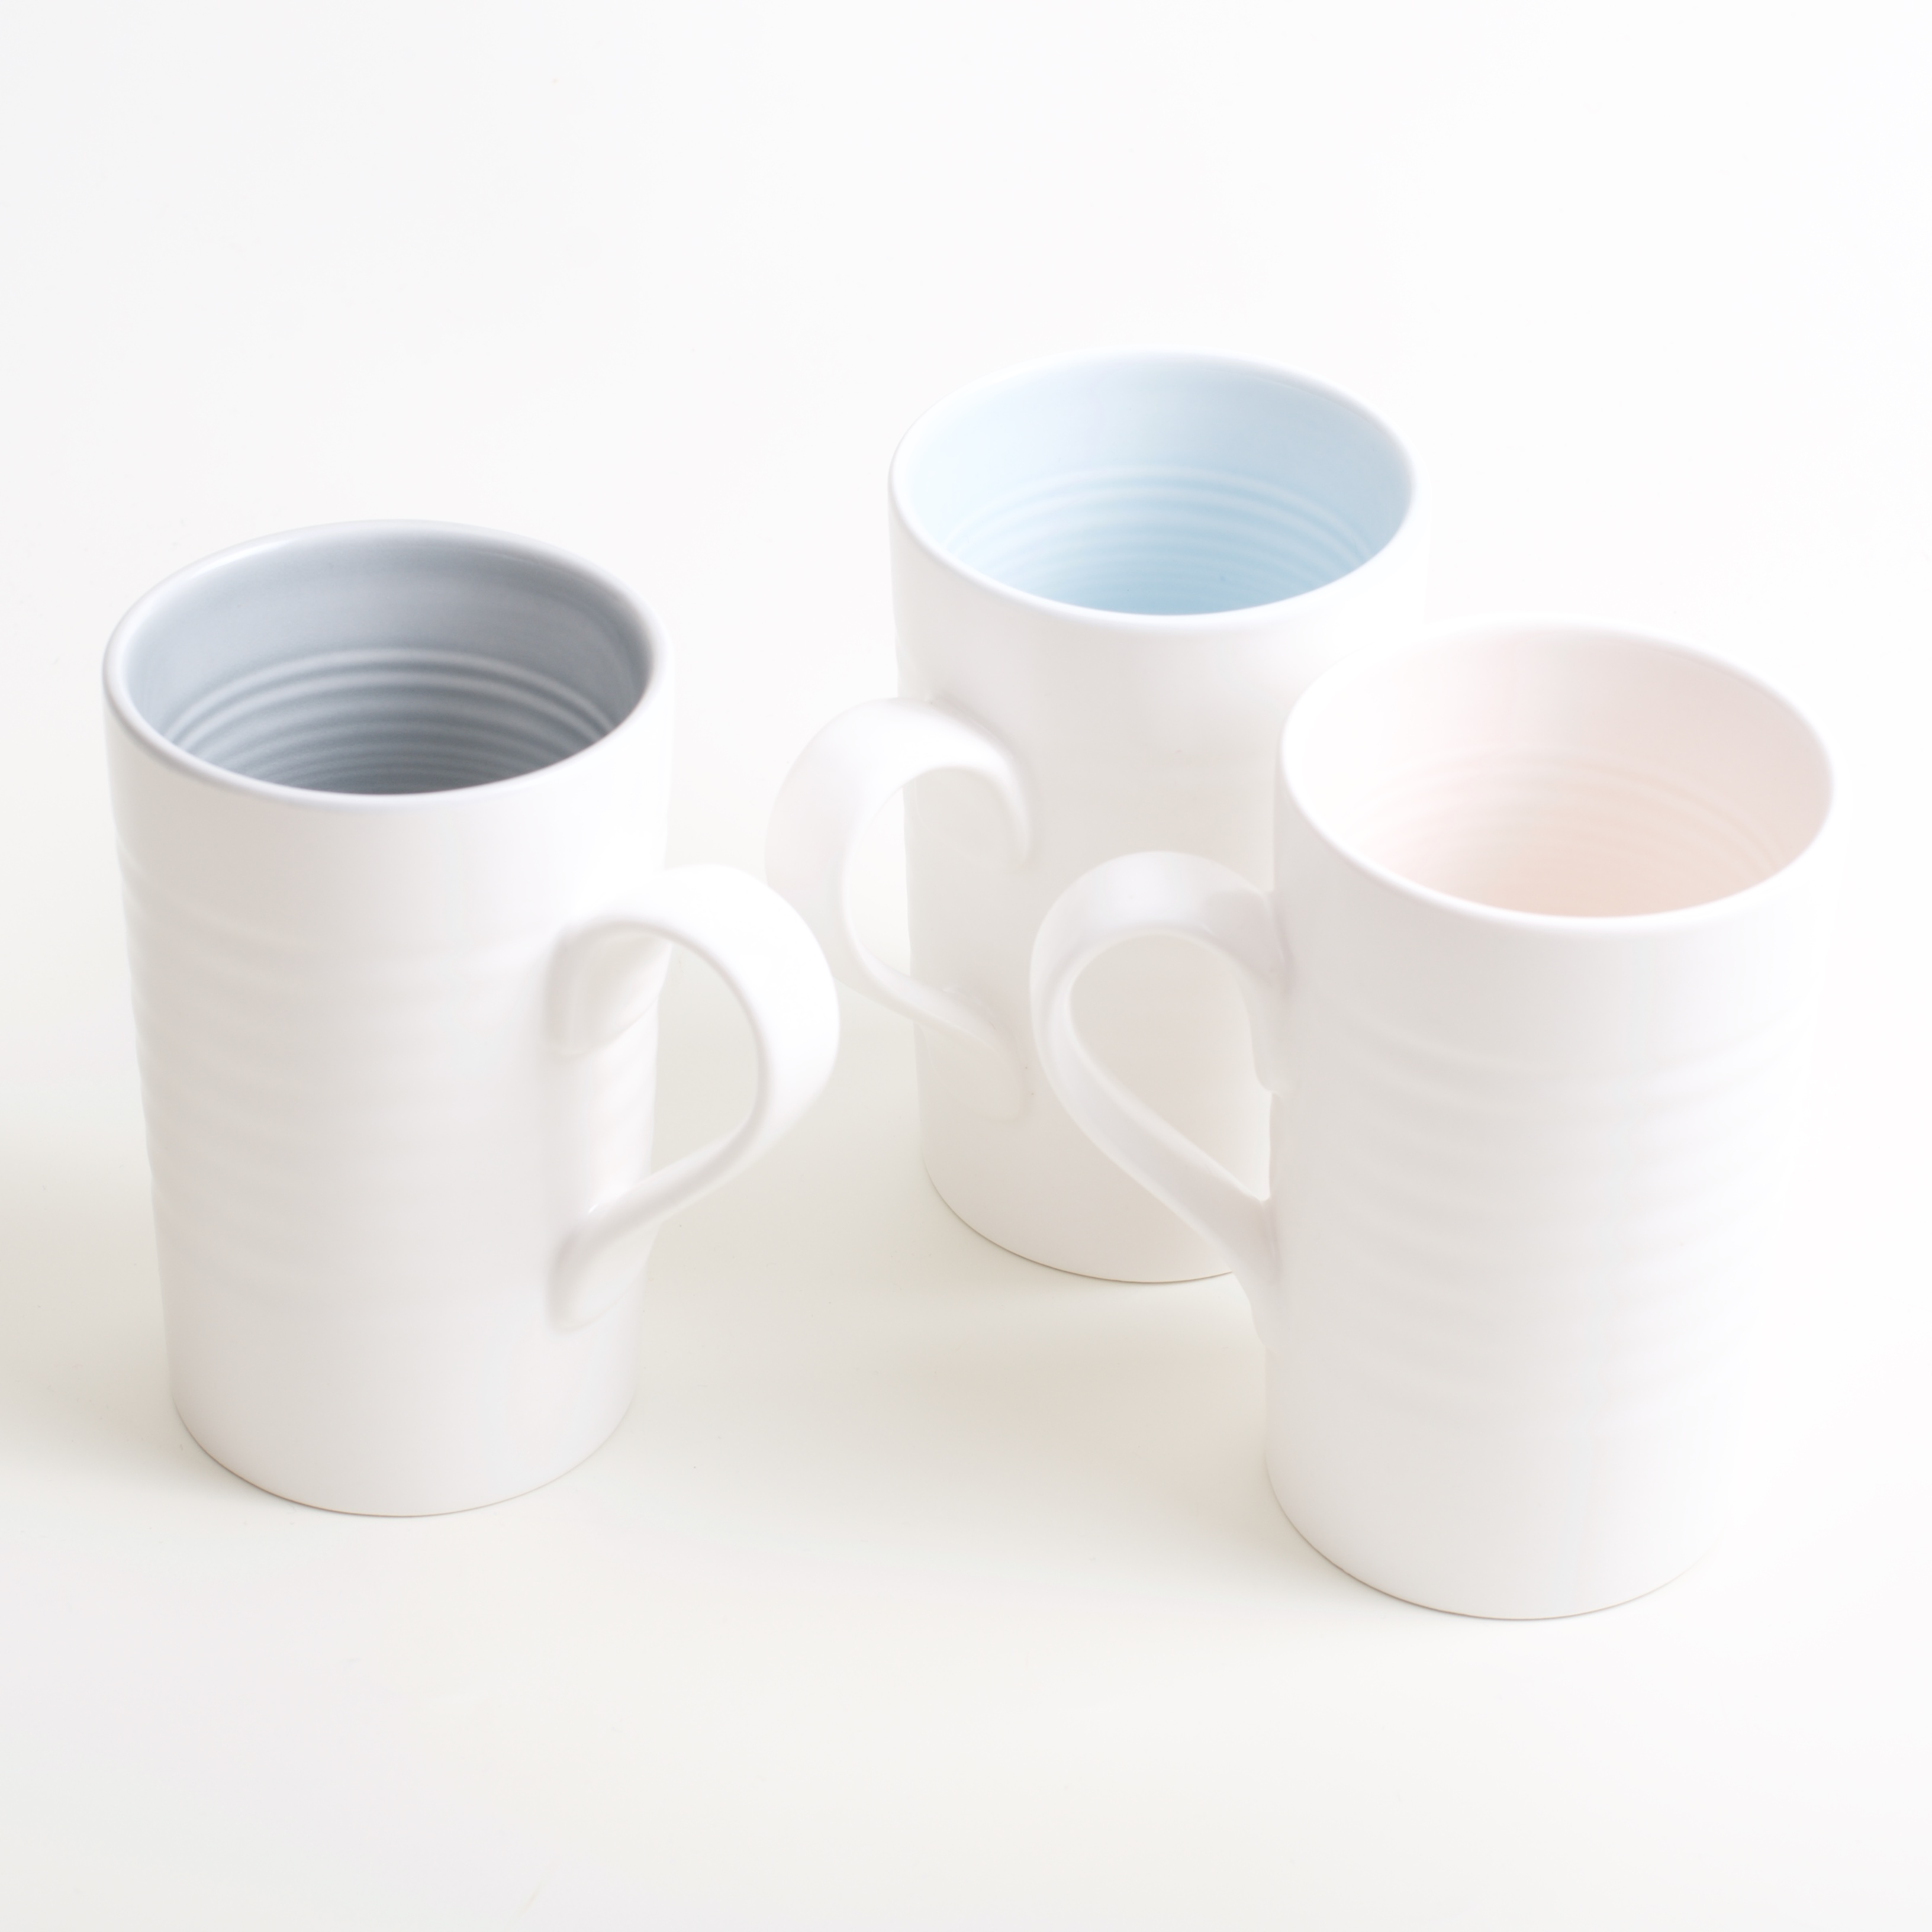 Tactile porcelain mugs